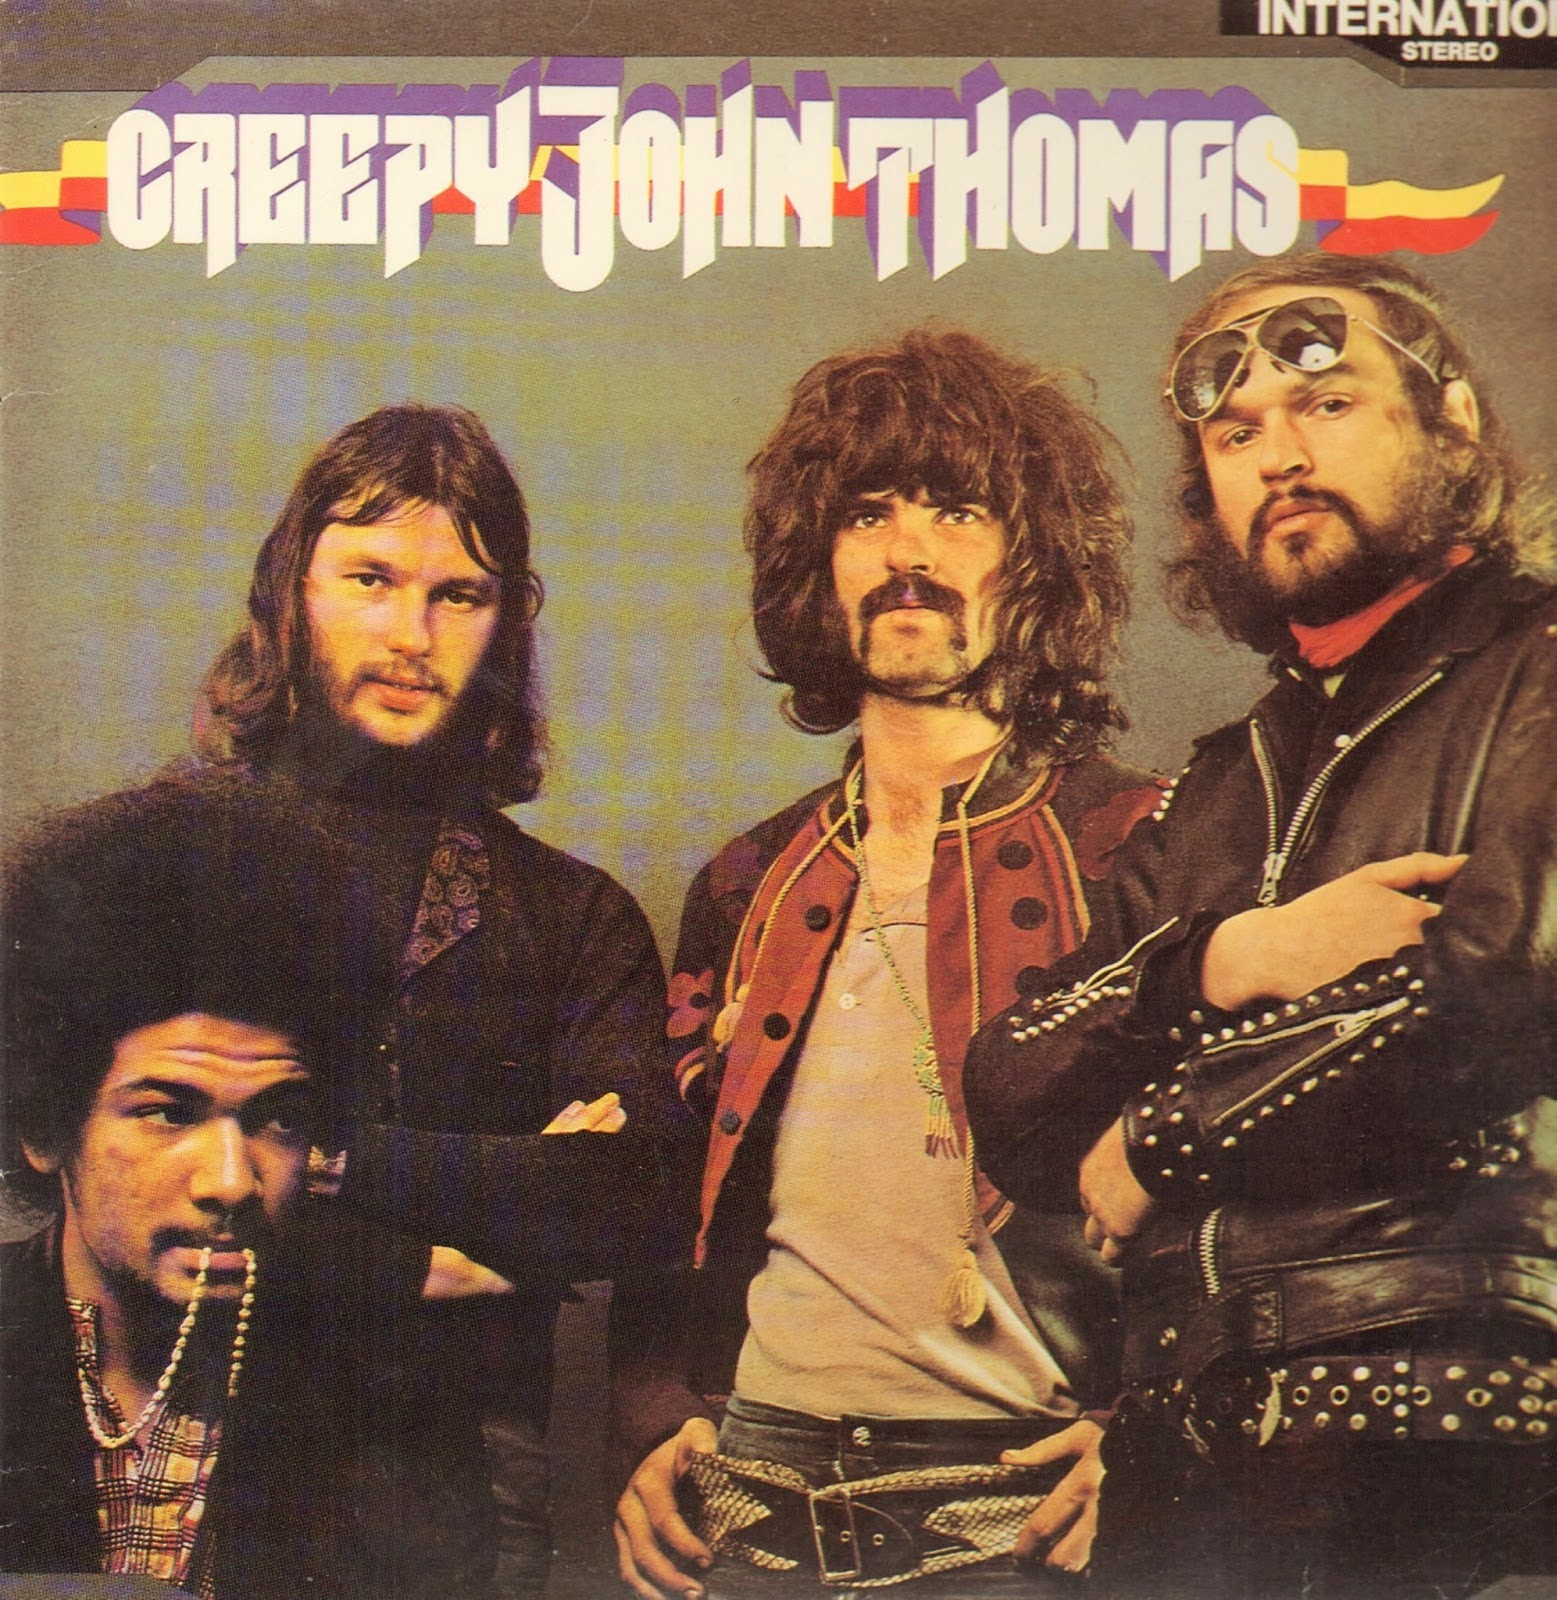 """Creepy John Thomas"" LP (1969)"